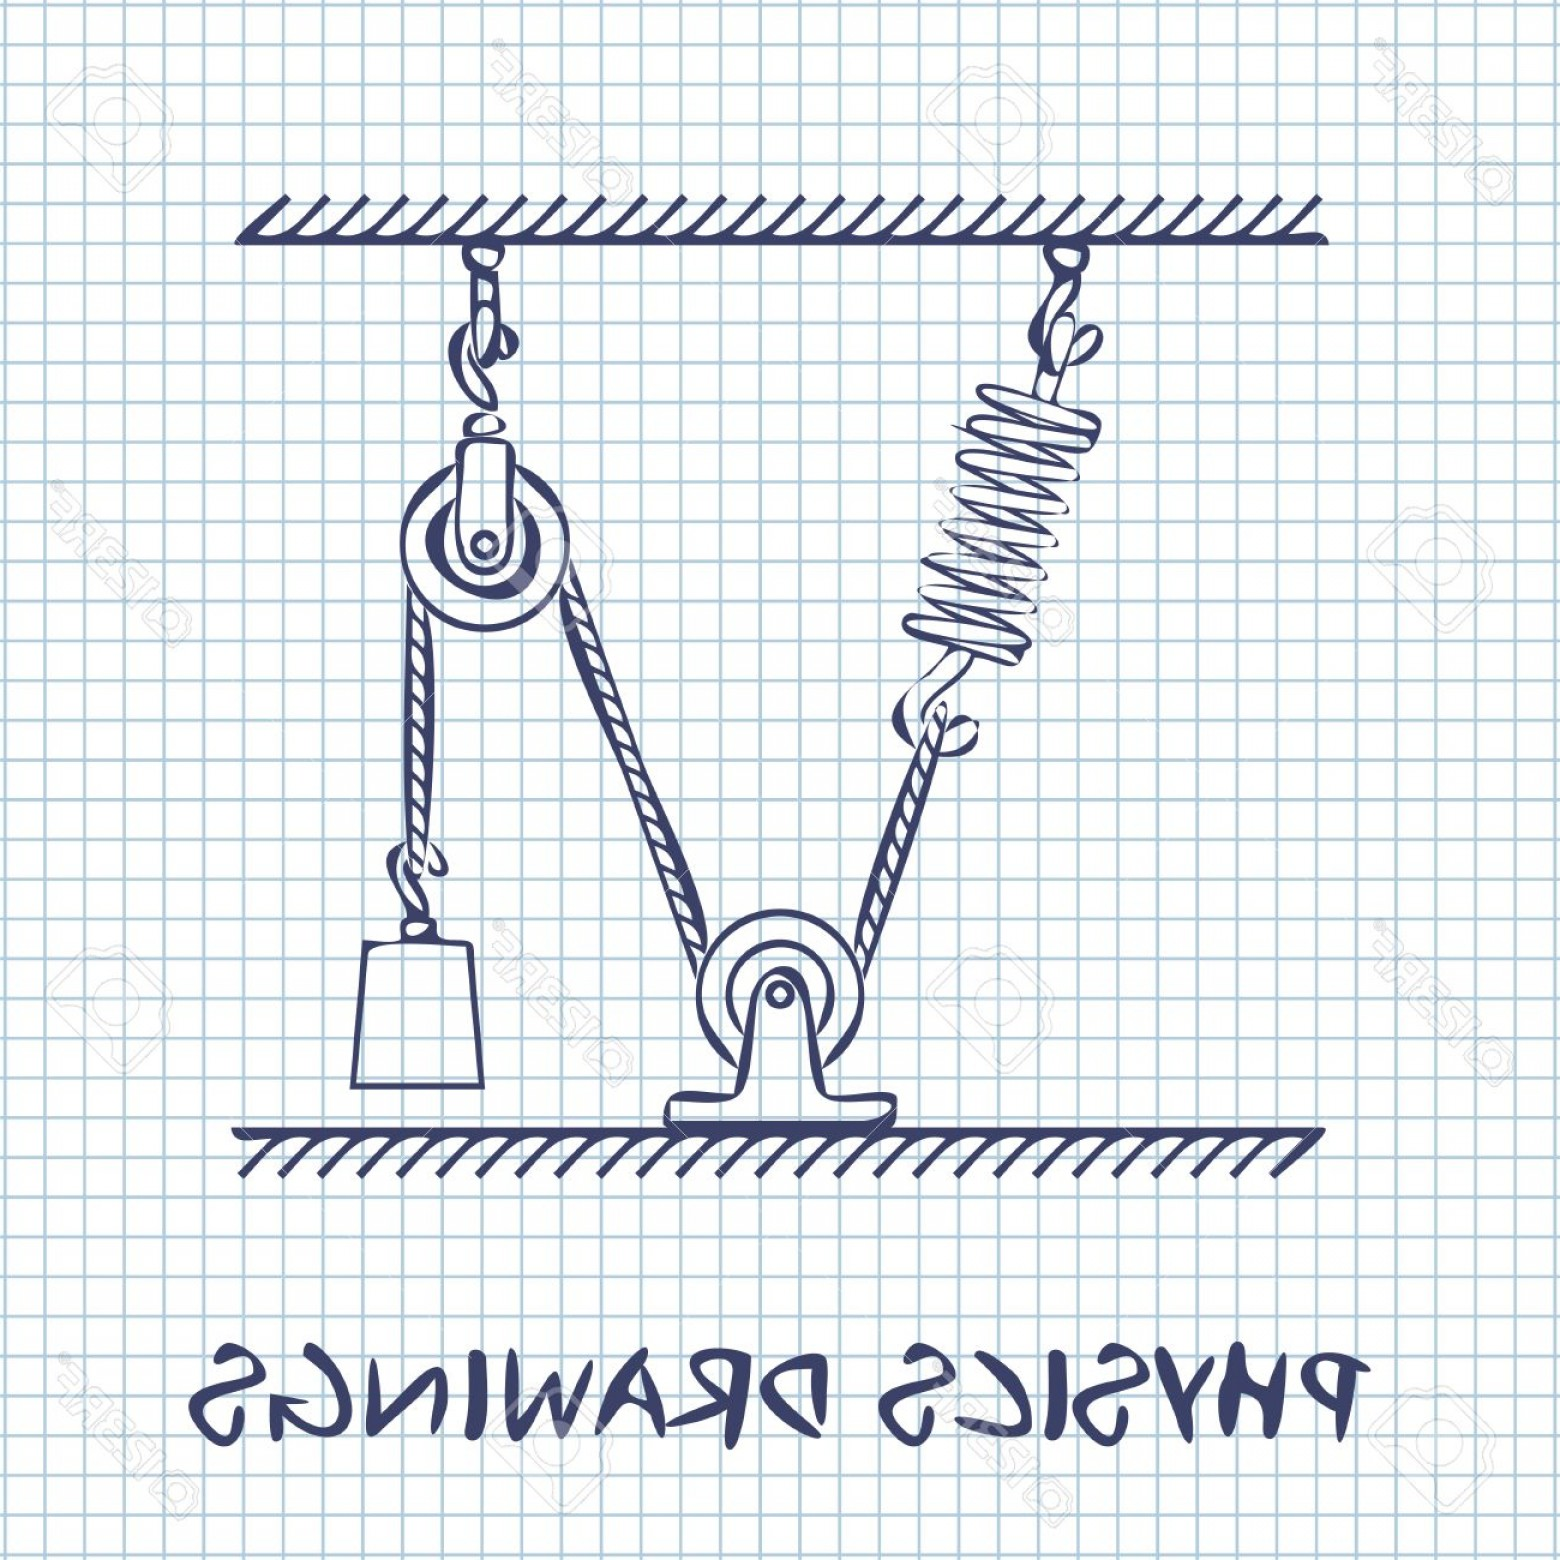 Graphing Vectors Physics: Photostock Vector Loaded Movable Pulleys With Spring And Rope Physics Drawing On White Squared Paper Sheet Background